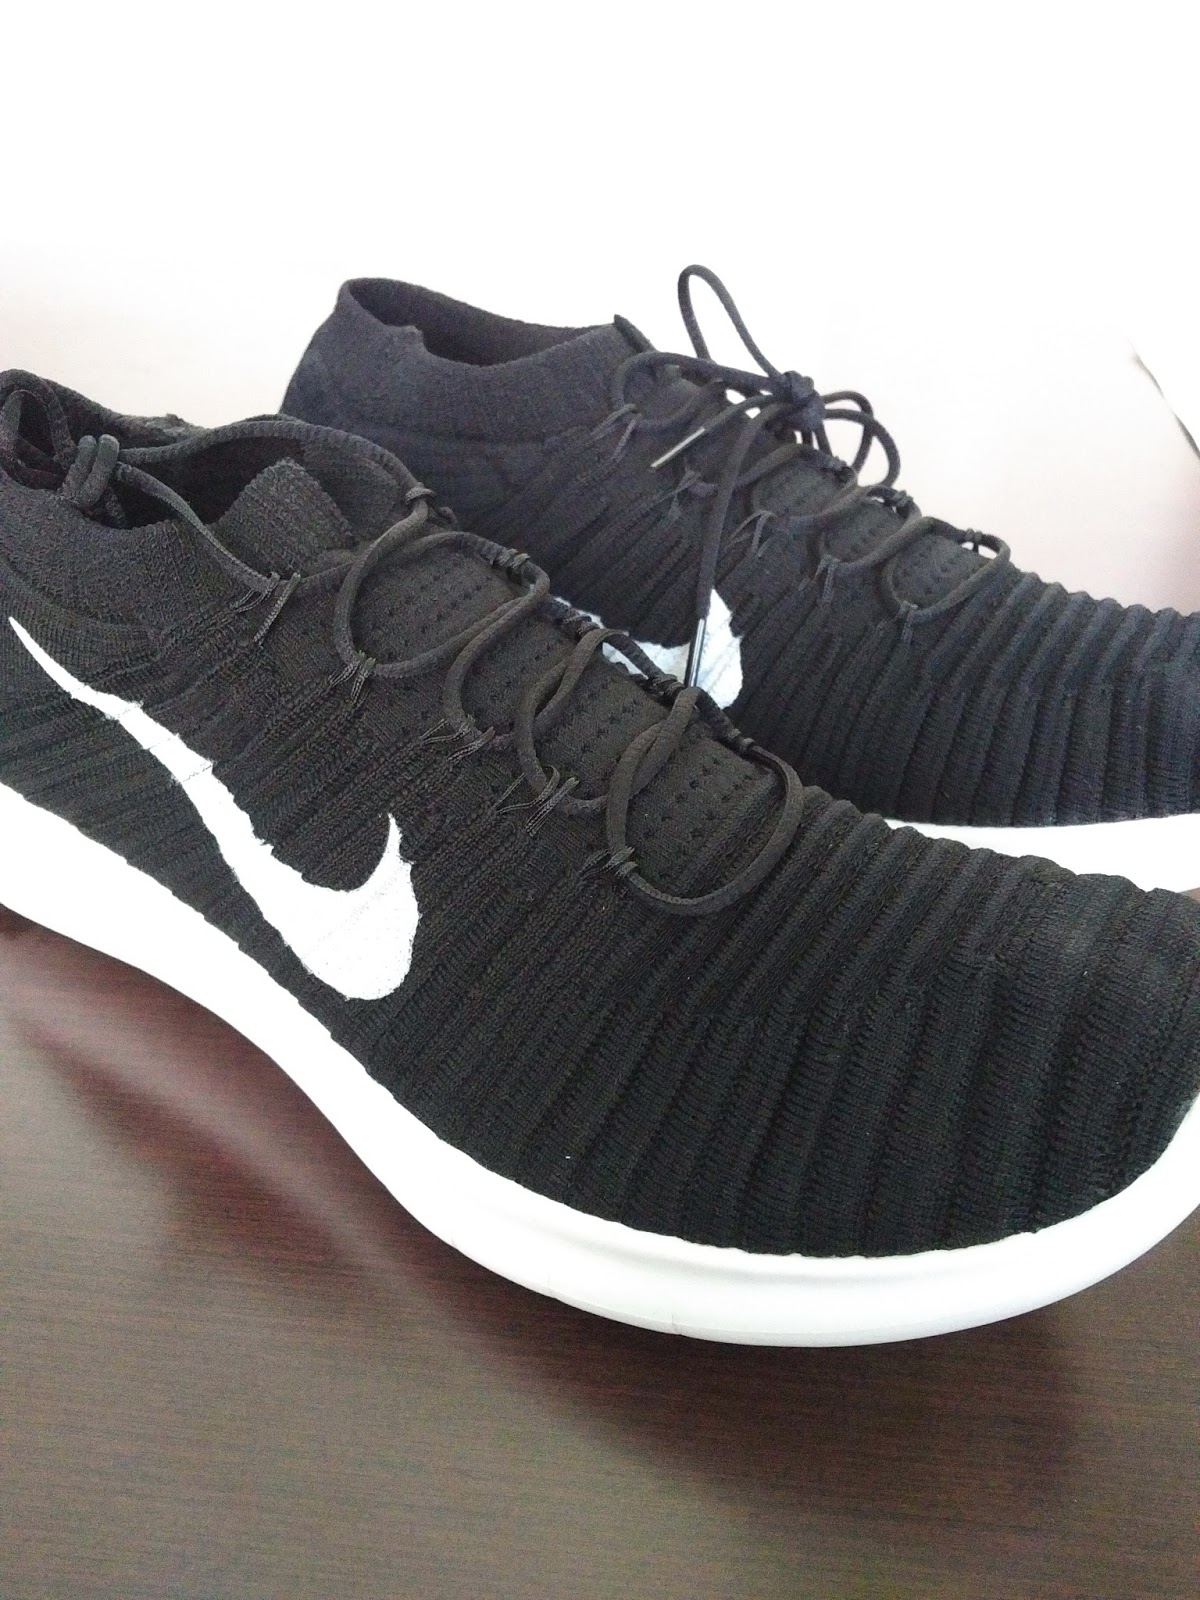 9run - a blog on running and the active lifestyle: Shoe Review: Nike Free  RN Motion Flyknit